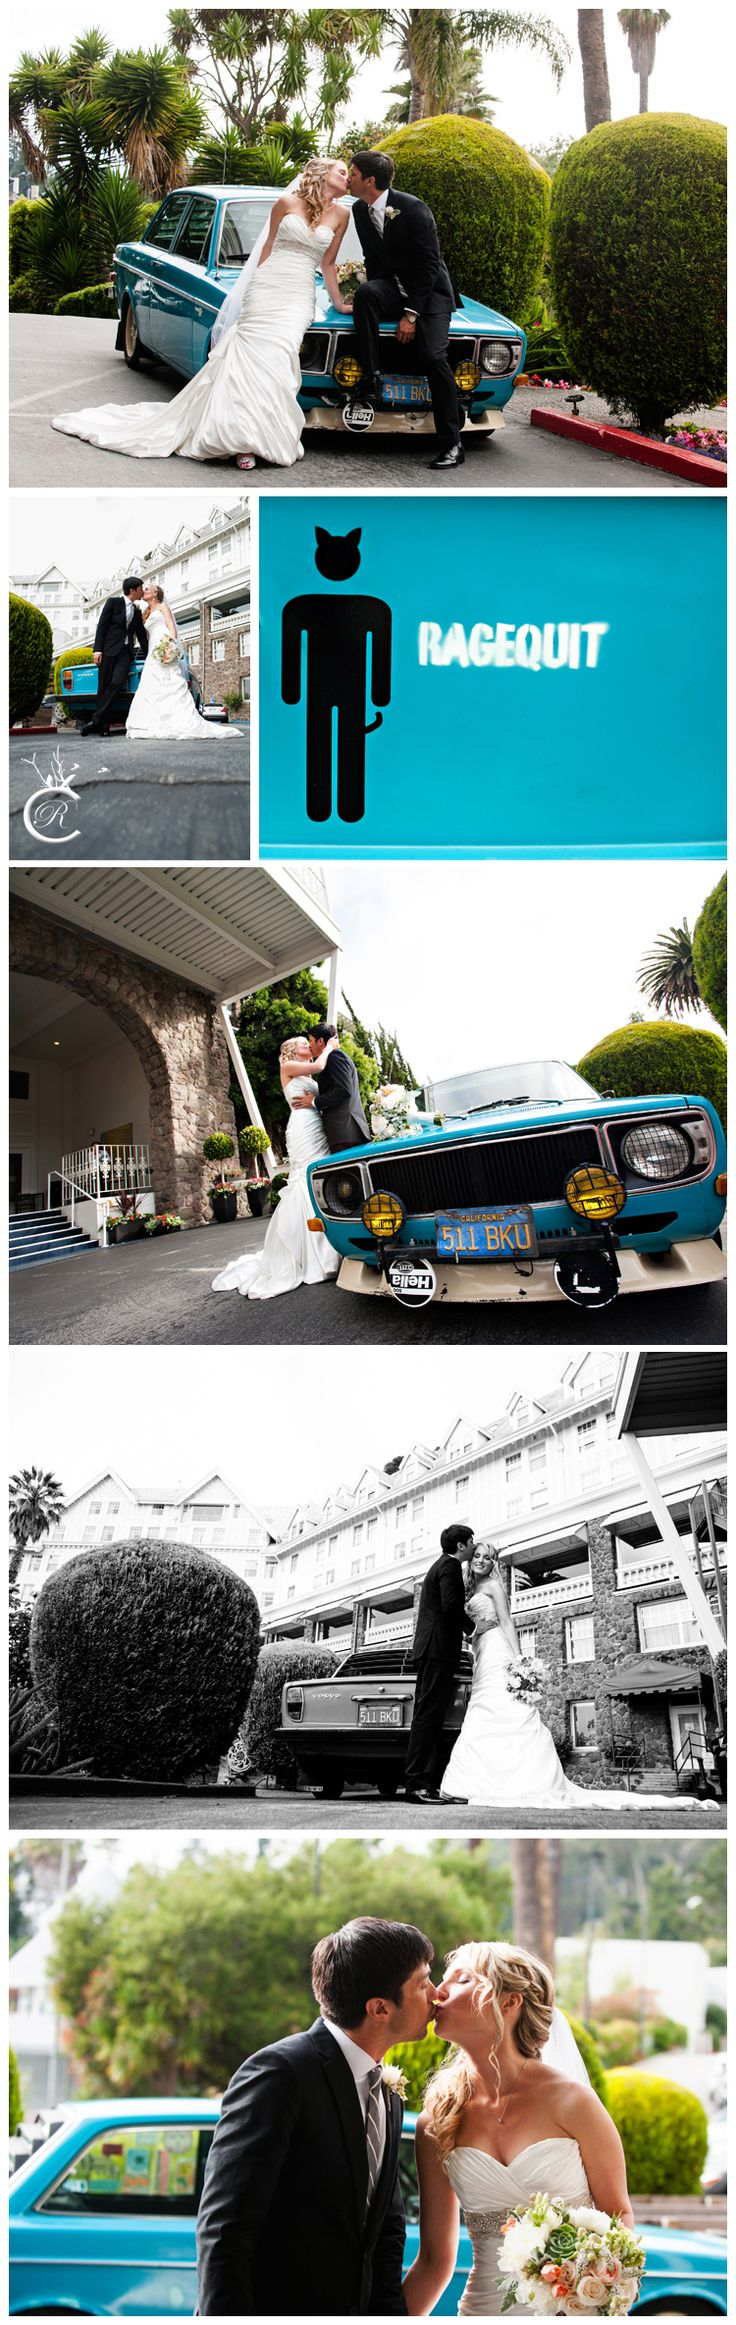 Wedding Photos at the Claremont Hotel & Spa • Claremont Hotel and Spa Wedding Photos • Wedding Photos with a 1971 Volvo 142 • Carrie Richards Photography • 1971 Volvo • CarrieRichards.com • 1971 Volvo 142 • Cool Wedding Car Photos • claremont hotel club and spa wedding